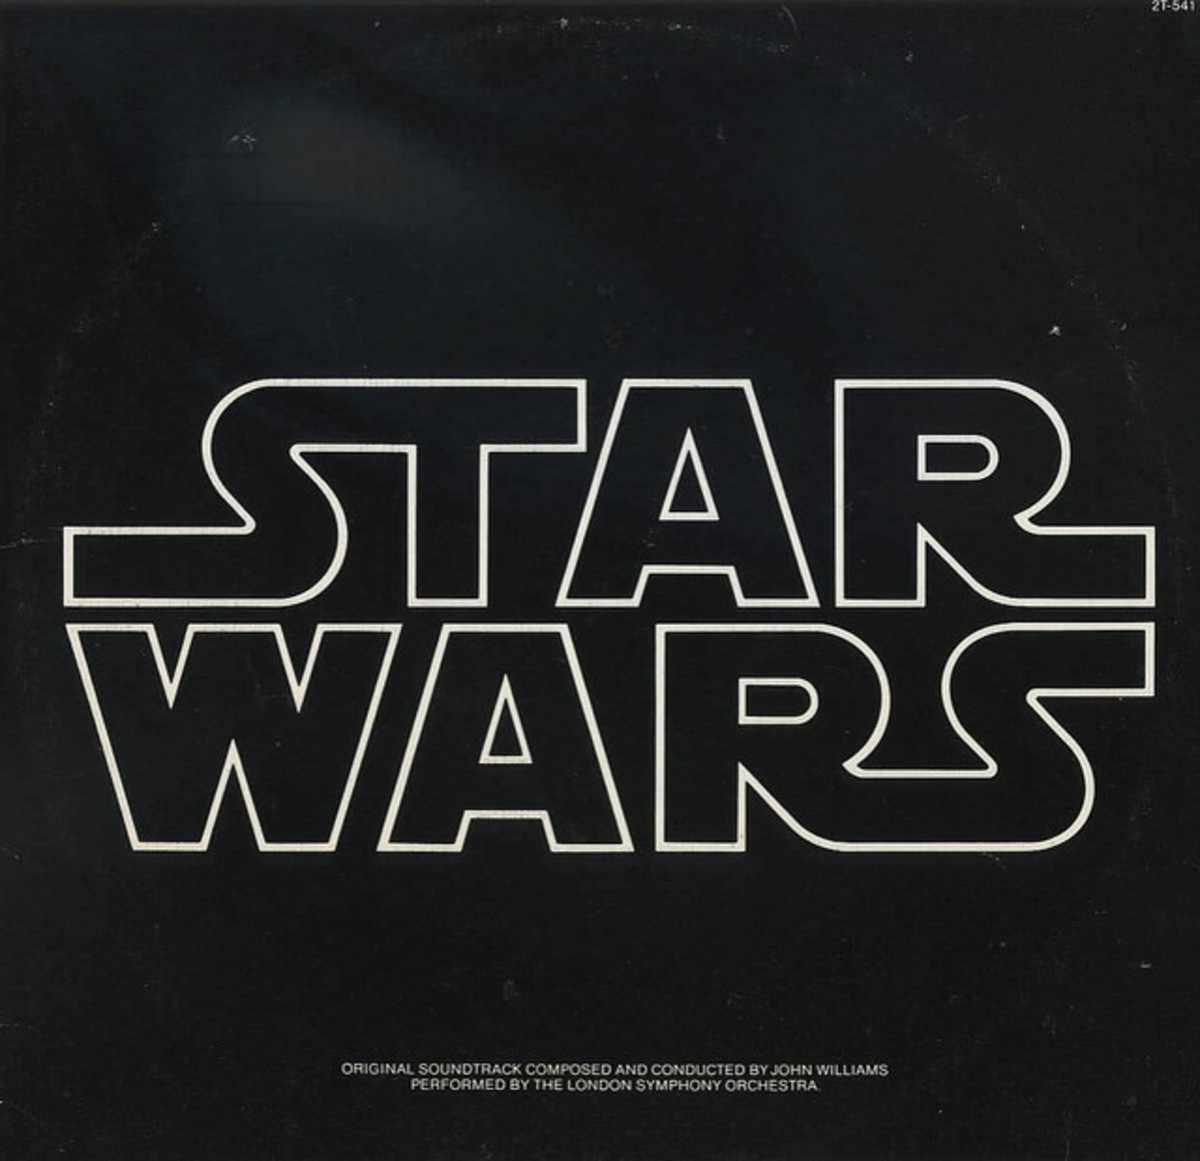 """Star Wars"" 20th Century Records 2T-541 2 12"" LP Vinyl Record Set, US Pressing (1977) John Williams Conducts the London Symphony Orchestra"